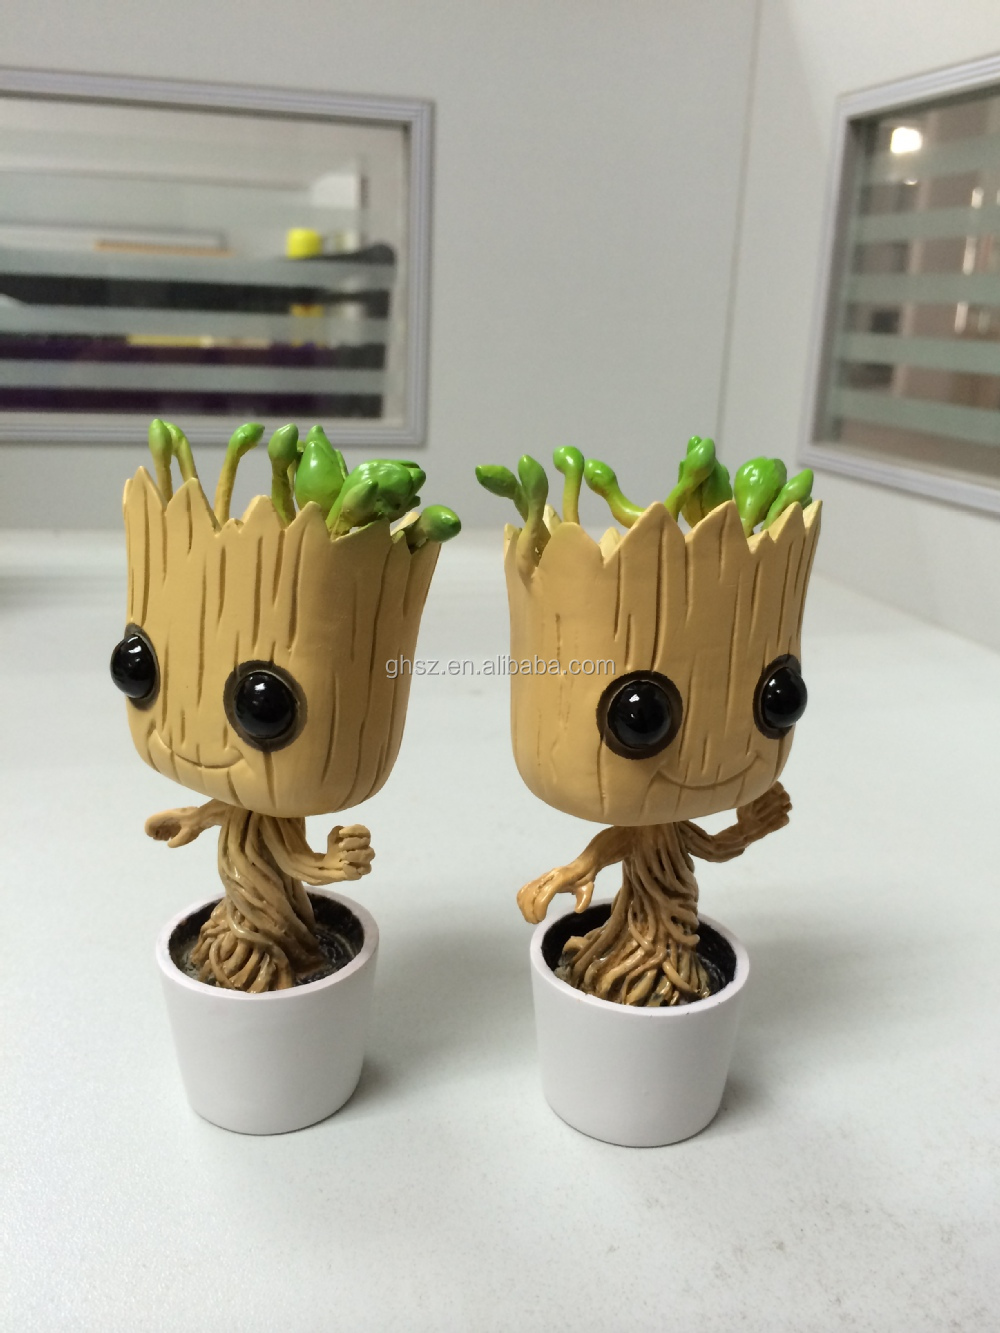 Guo hao custom hot toys dancing groot resin toys for free cartoon movie